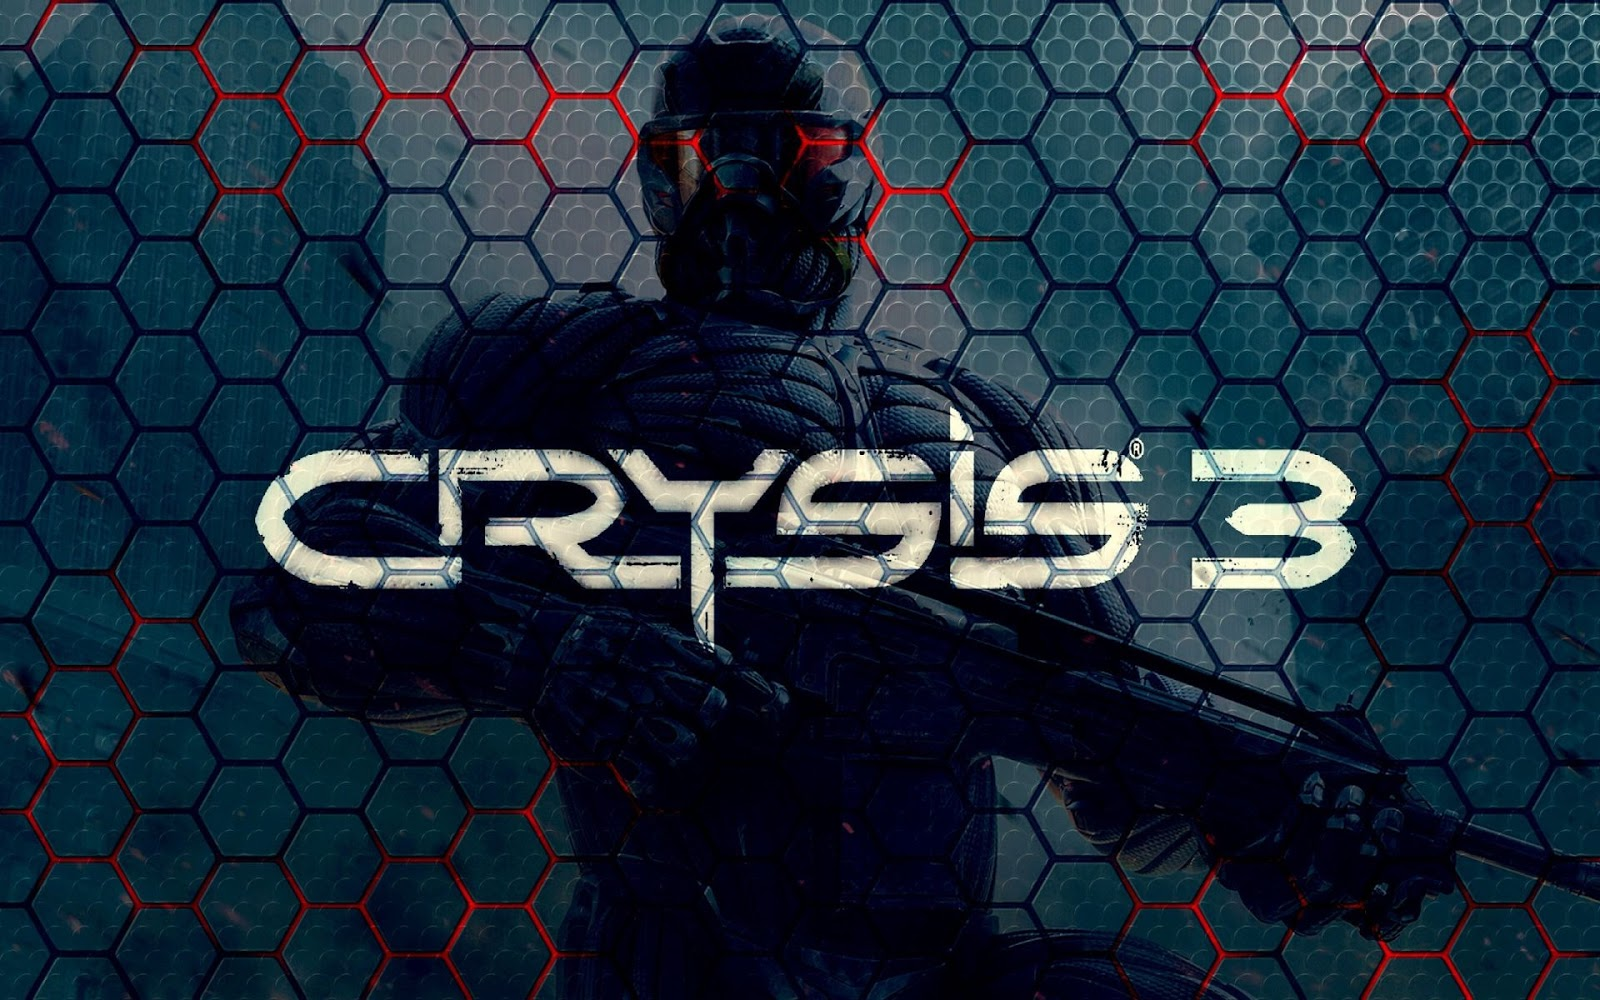 http://4.bp.blogspot.com/-FLBr37JAbXo/UT3FXx7jj8I/AAAAAAAAEQg/1crelFsoh70/s1600/crysis-3-wallpaper-for-1920x1200-widescreen-27-181.jpg